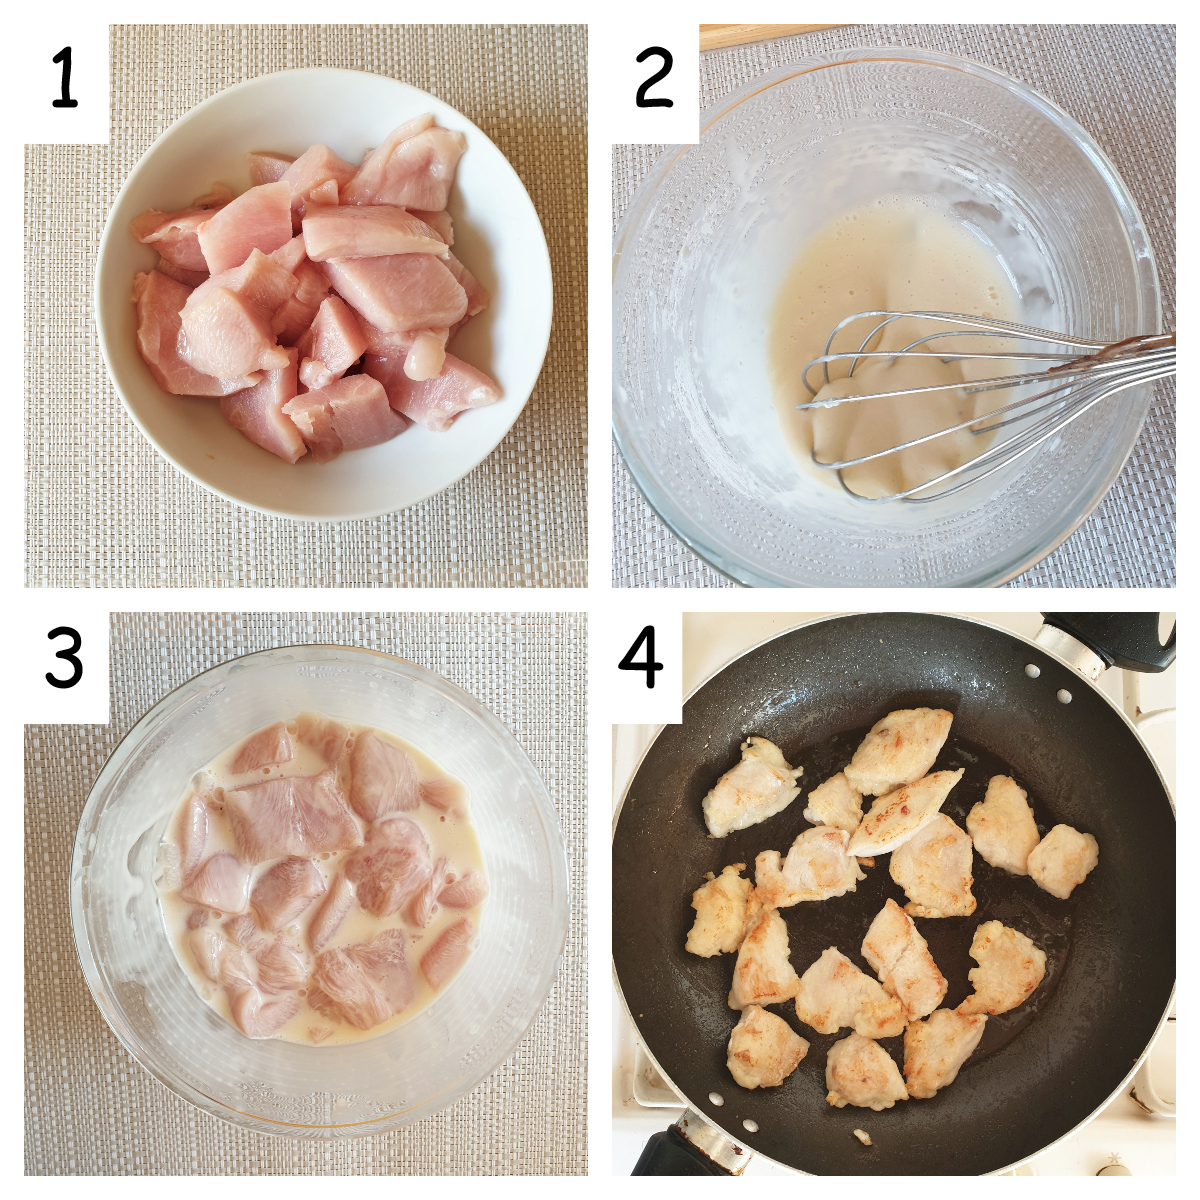 Steps for making batter and for frying the sesame chicken.